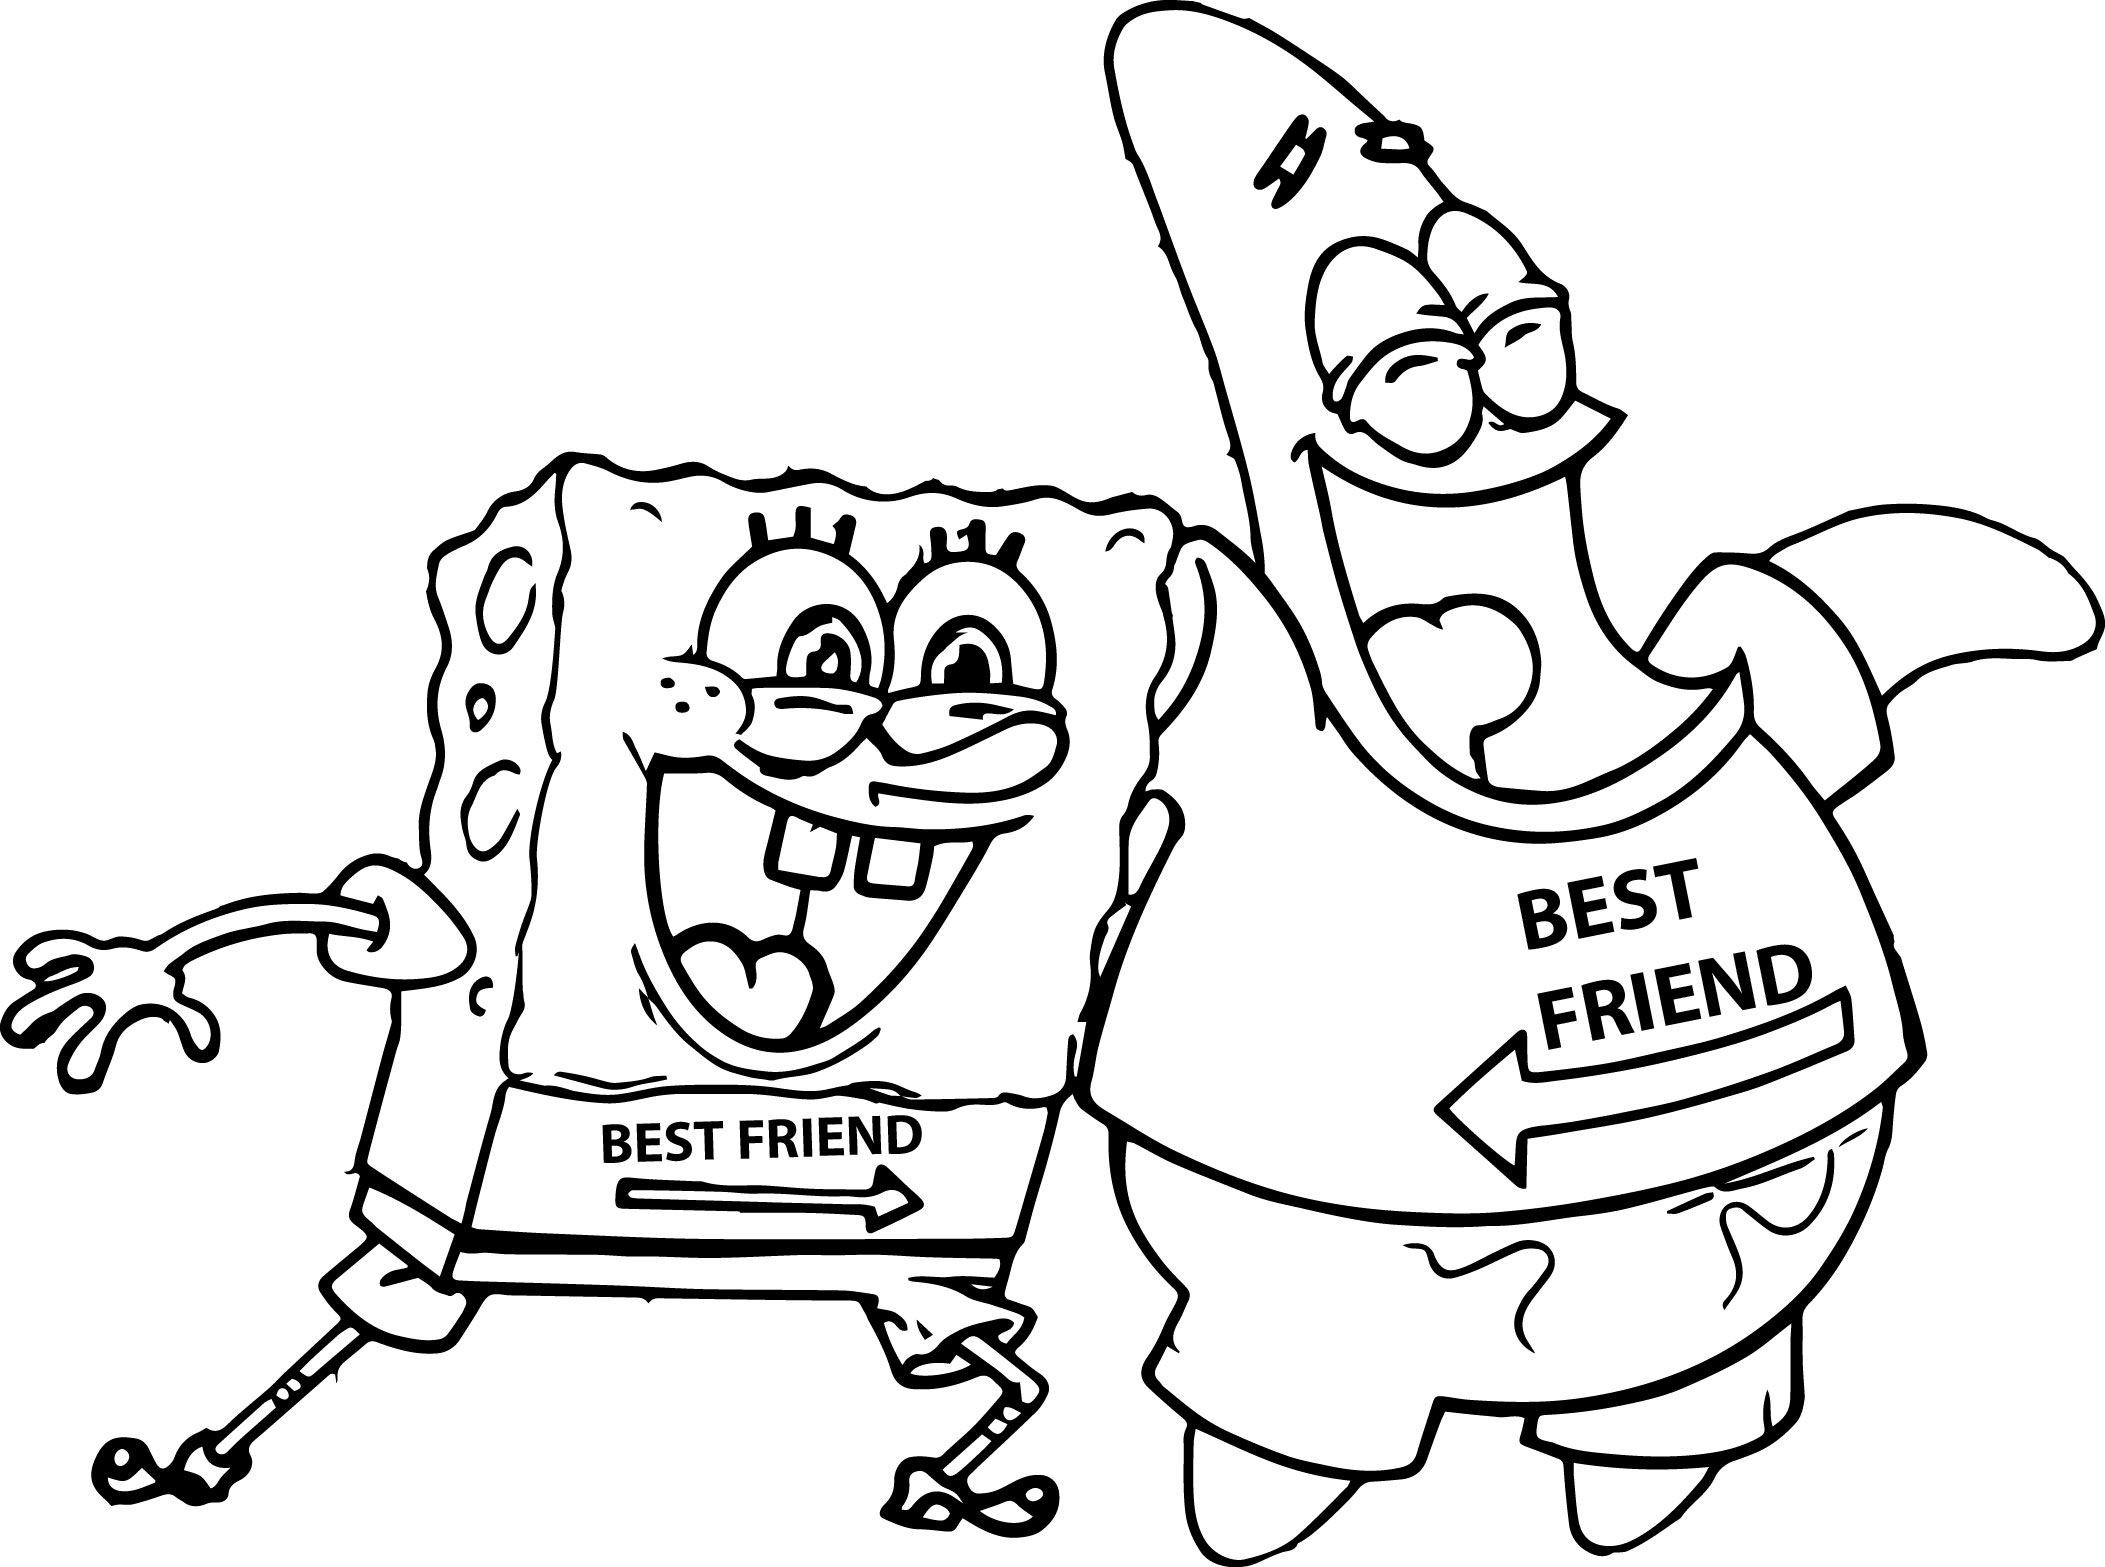 Spongebob Coloring Sheet Pdf